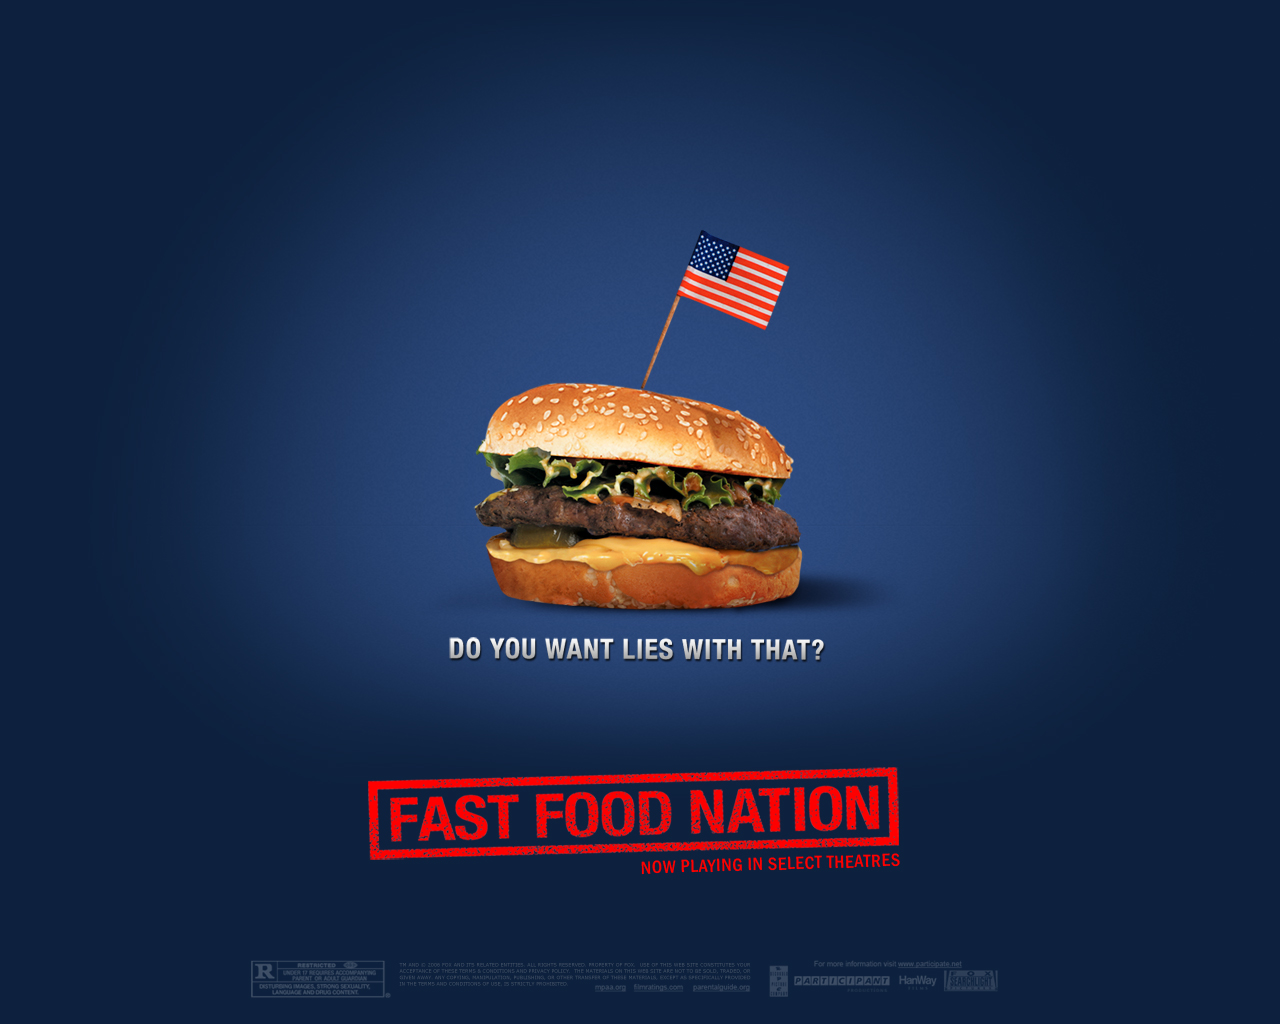 Americans Are Obsessed with Fast Food: The Dark Side of the All-American Meal